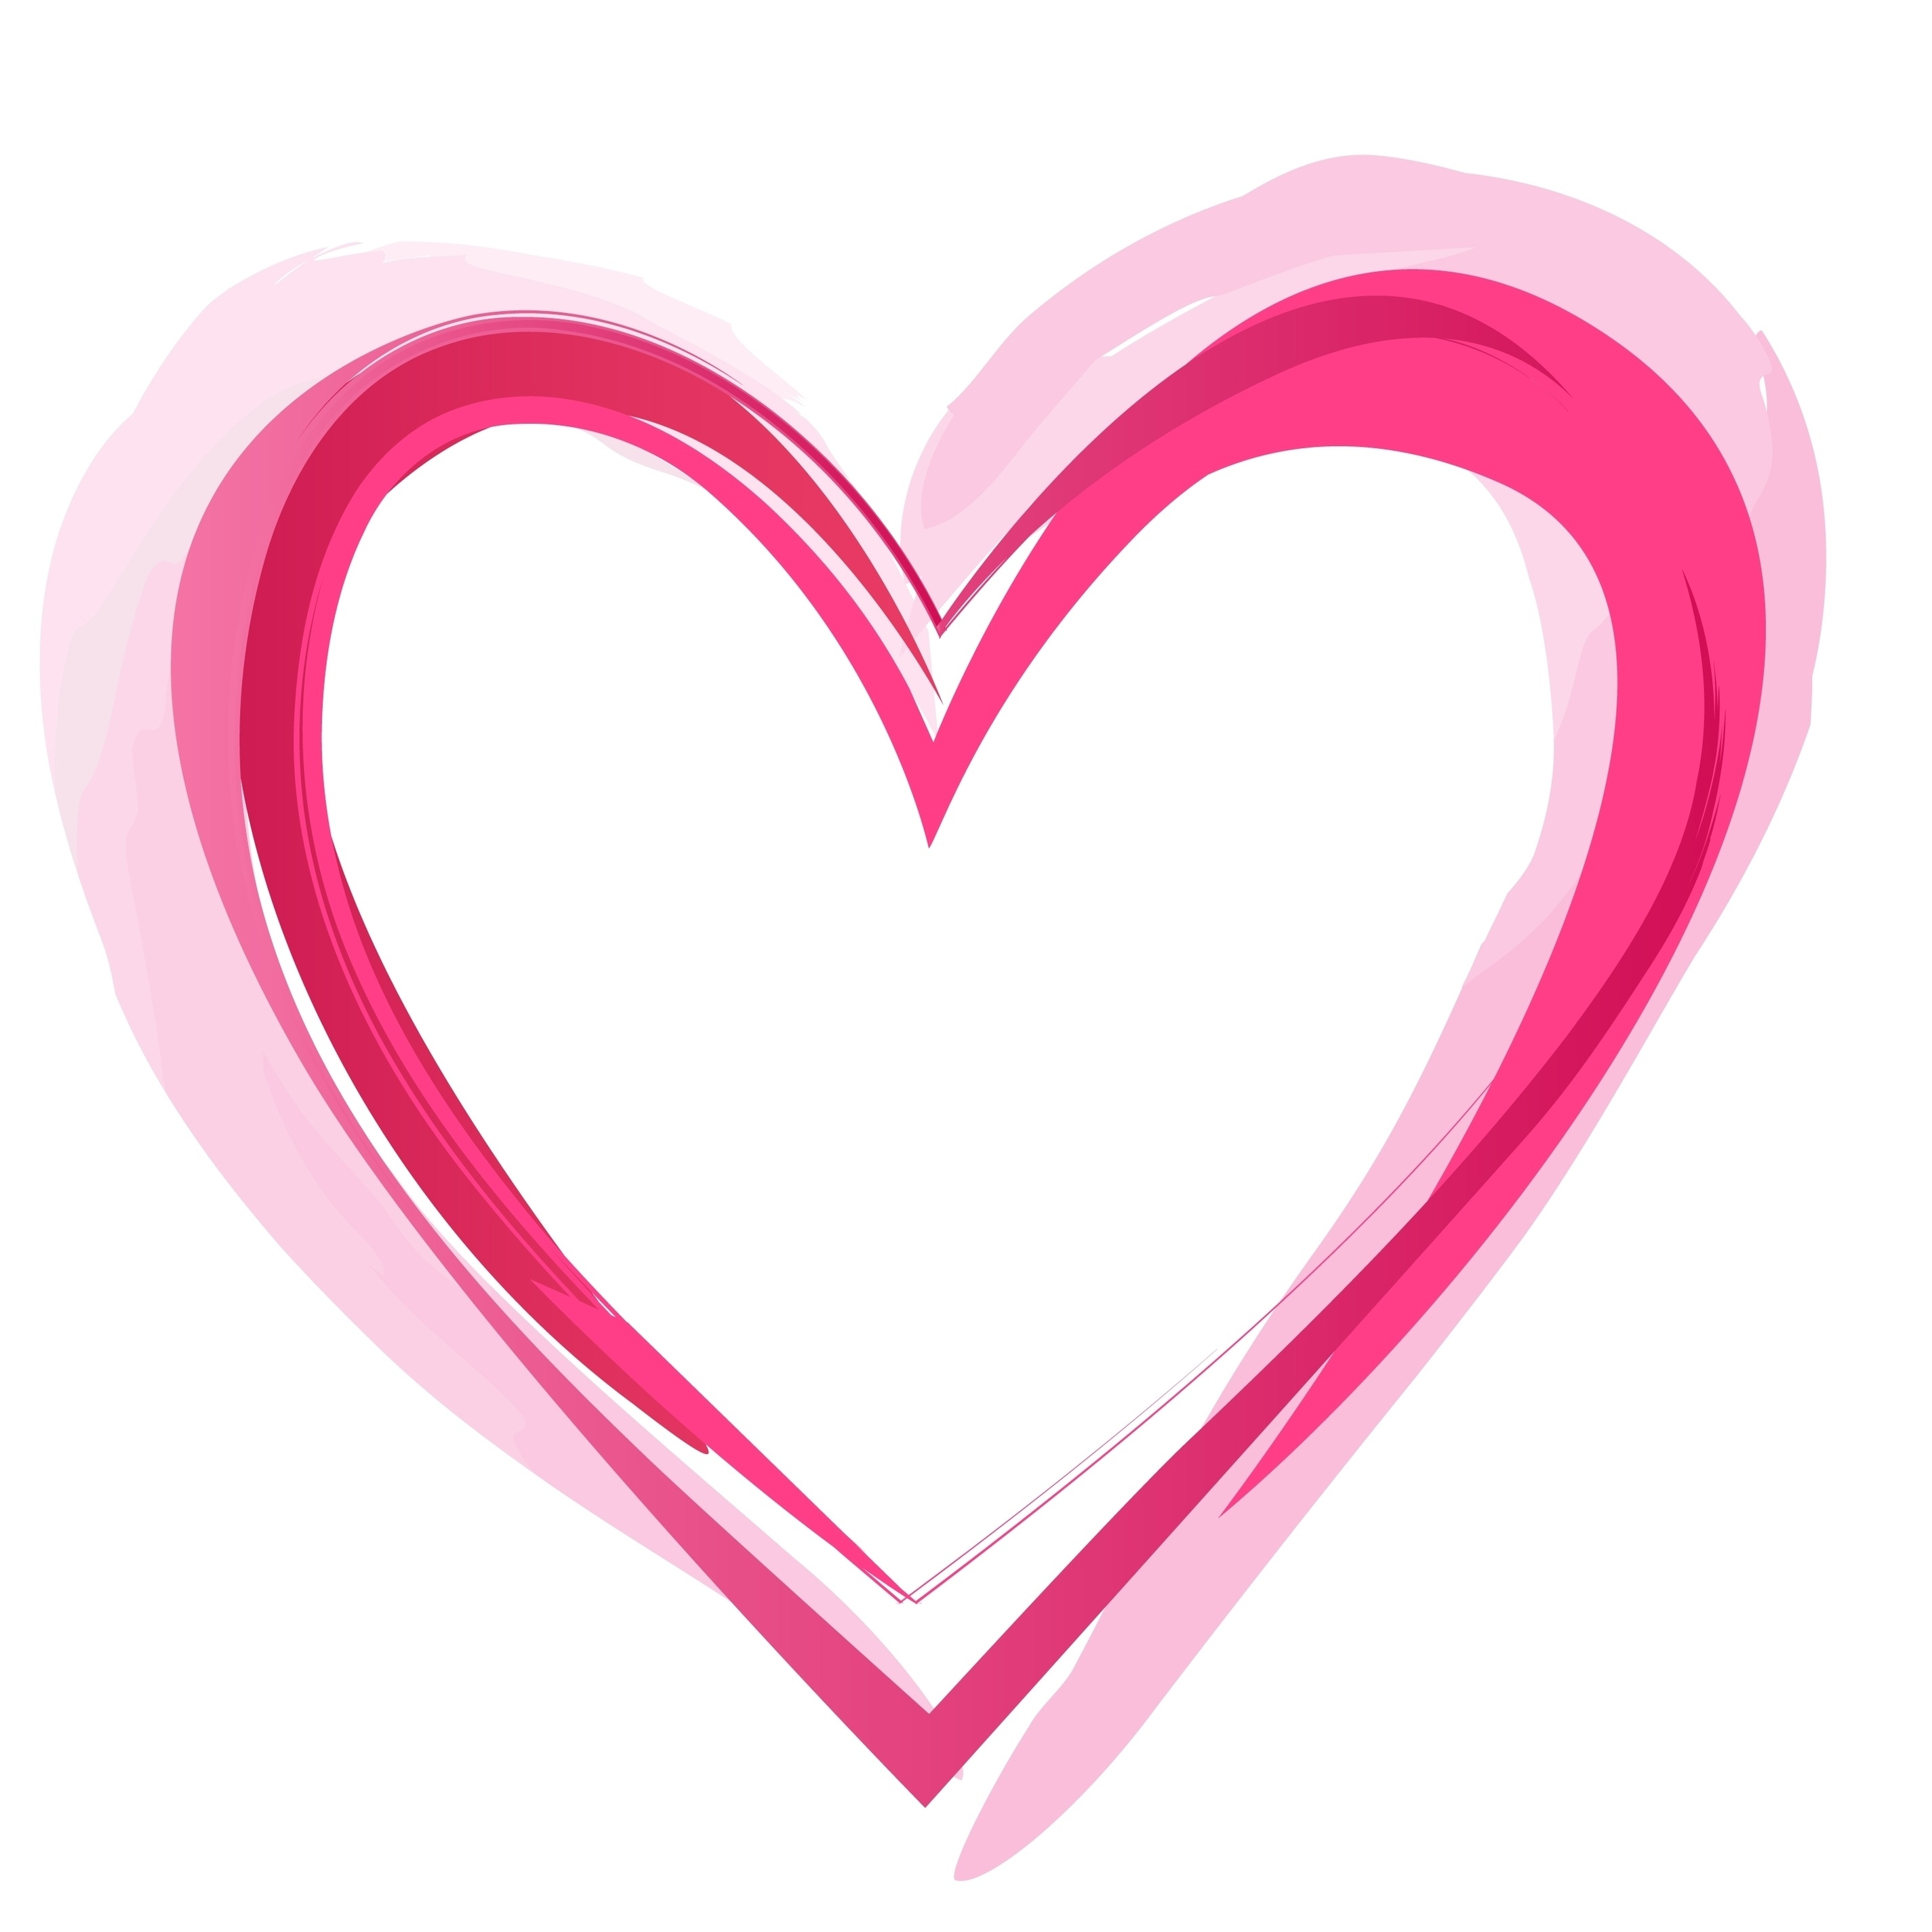 2850x2850 Best Of Drawn Heart Clipart